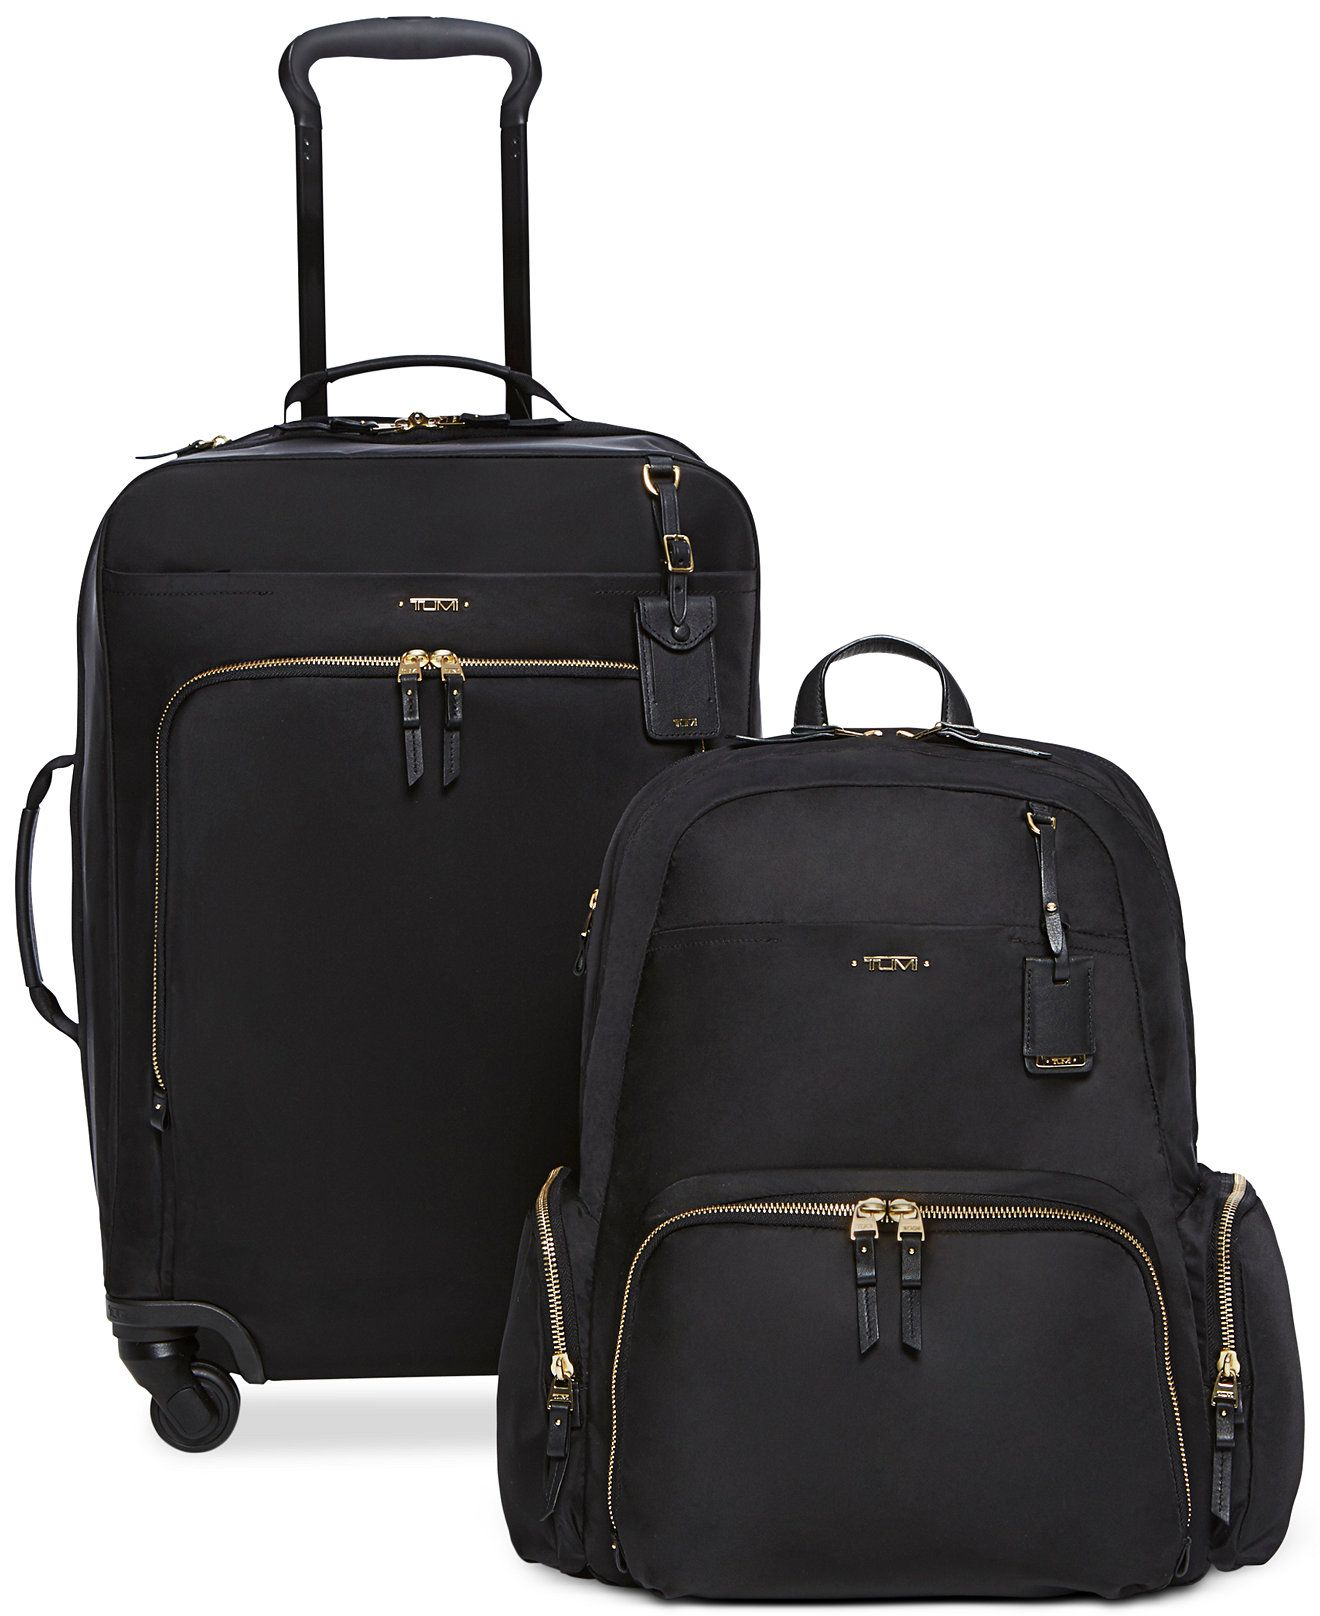 fdf6eb9c1c1b Tumi Voyageur Luggage - Luggage Collections - Macy's | Accessories ...